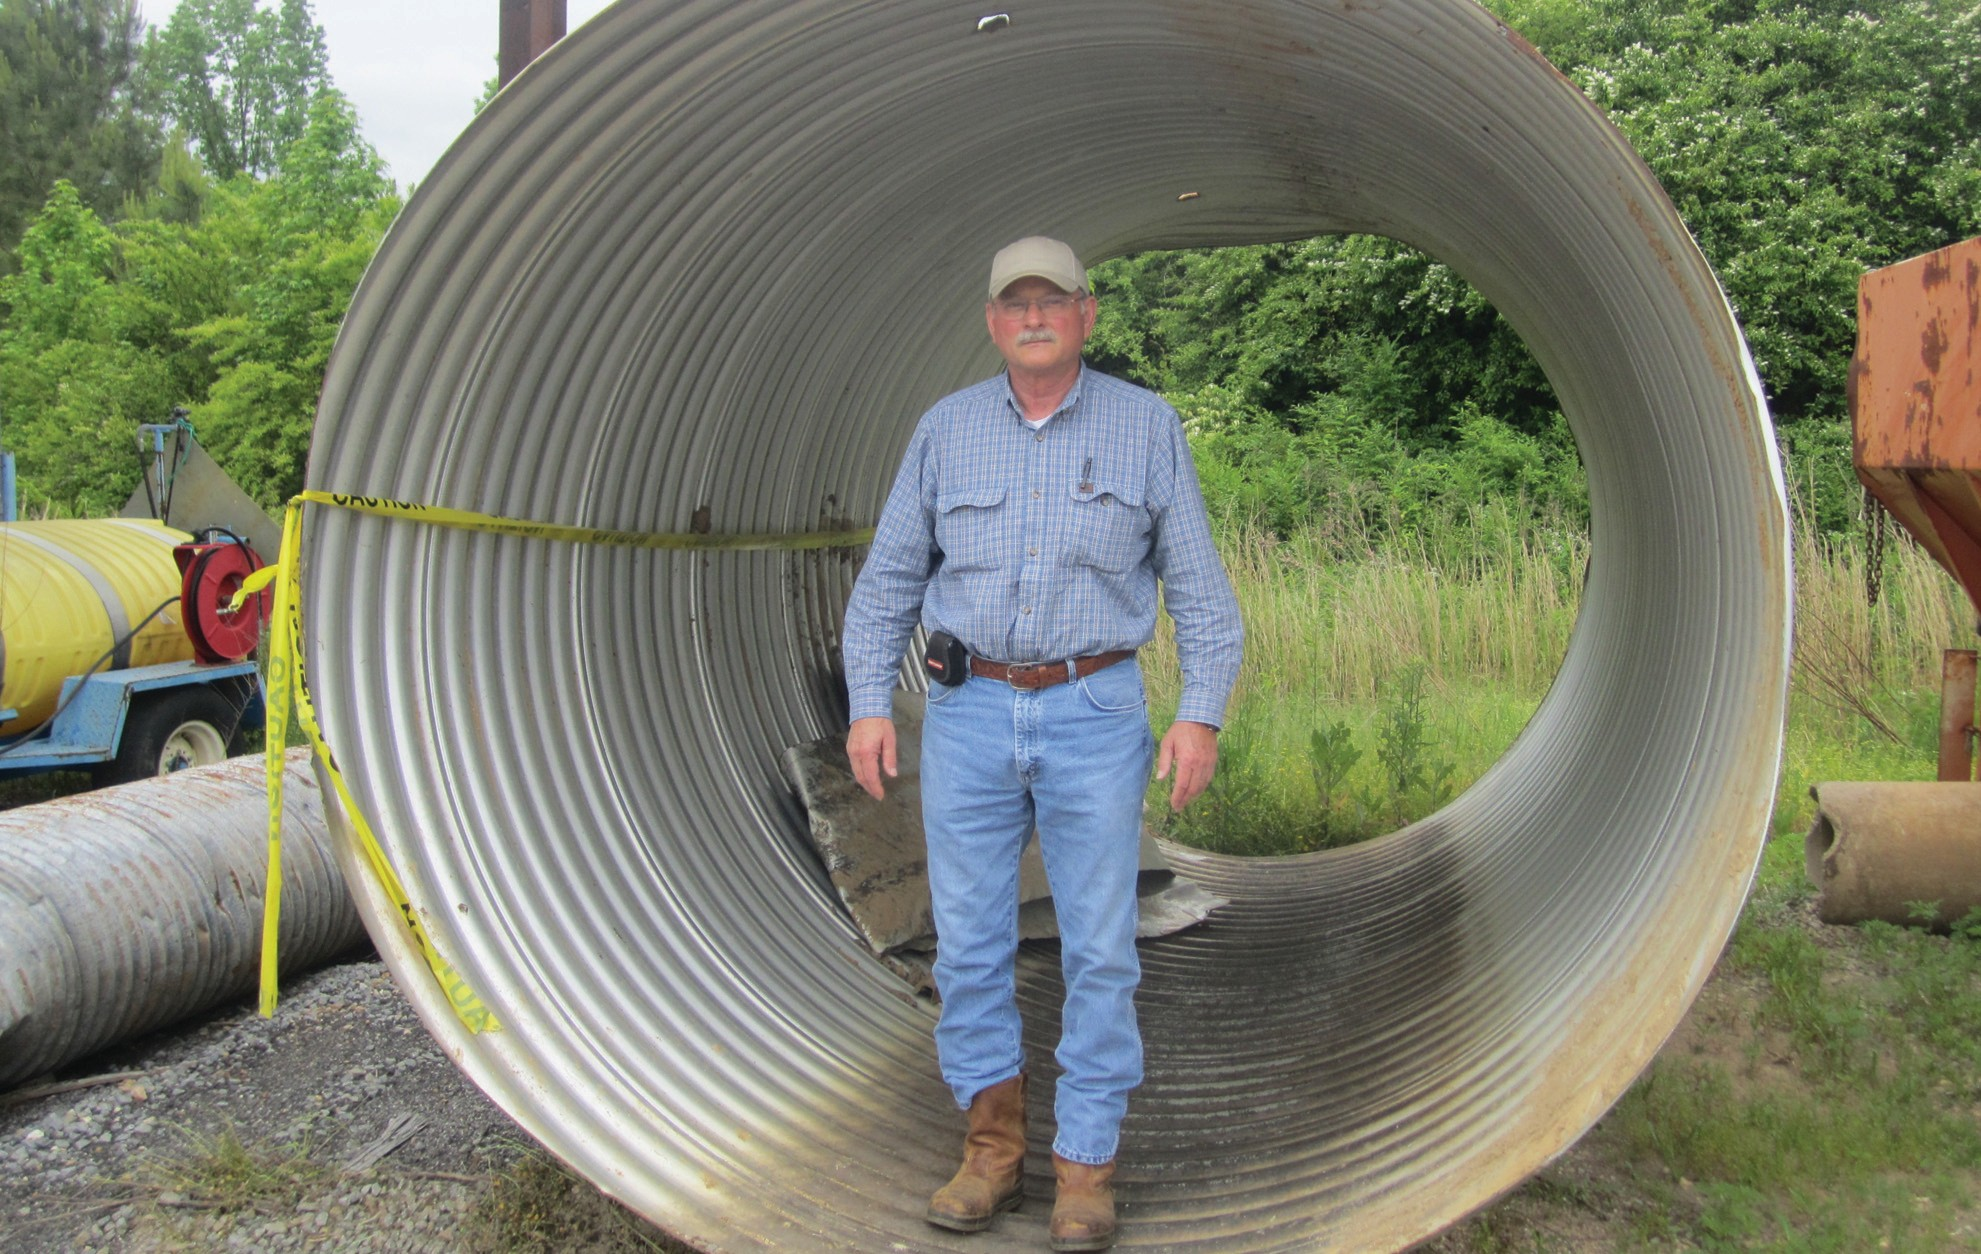 District 2 Commissioner Carthal Self demonstrates one of his district's bigger recent problems: a 100-foot run of 96-inch diameter pipe – all of which had to be replaced except this one section. The rest of it had rusted through and had to be pulled out. Cost: $14,000 plus (just the pipe). Time required for the replacement project: roughly two weeks. The ditch on Mt. Carmel Rd. had to be re-routed and the pipe reburied. Works fine now, Self said.